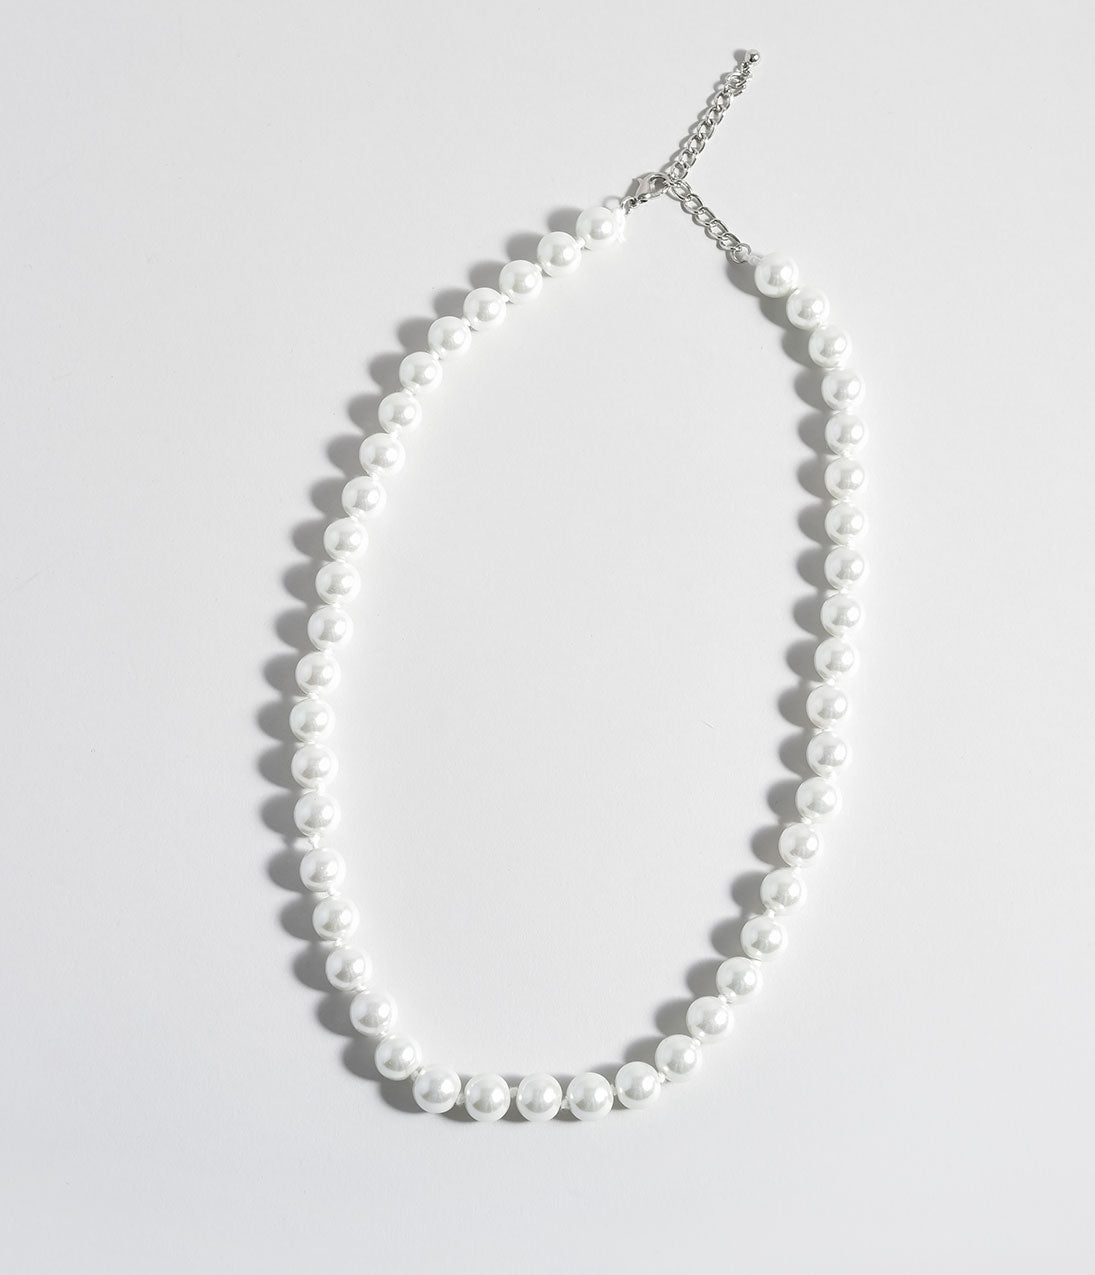 Vintage Style Jewelry, Retro Jewelry Ivory Pearl Single Row Beaded Necklace $22.00 AT vintagedancer.com